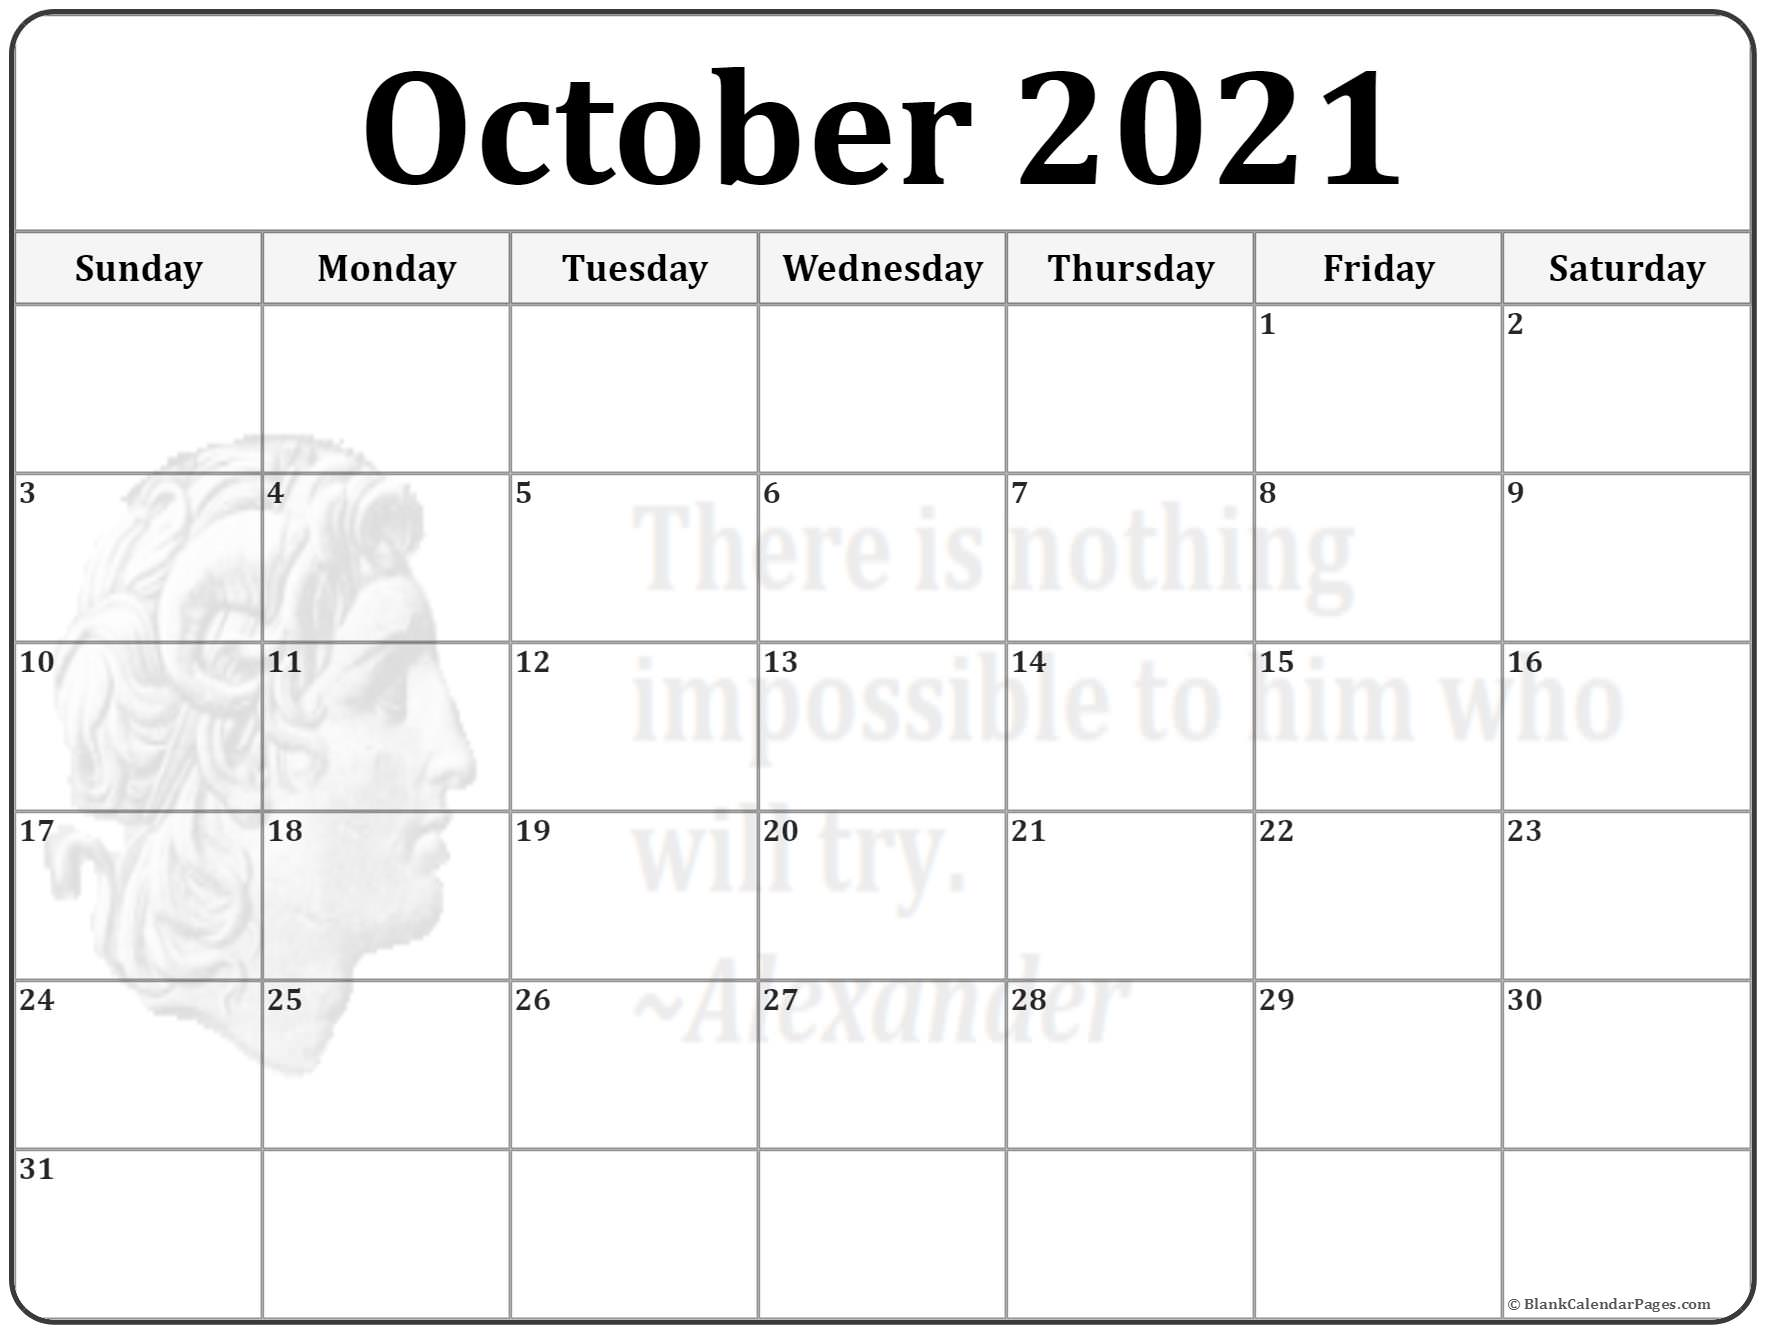 Calendar Templates October : October calendar templates of printable